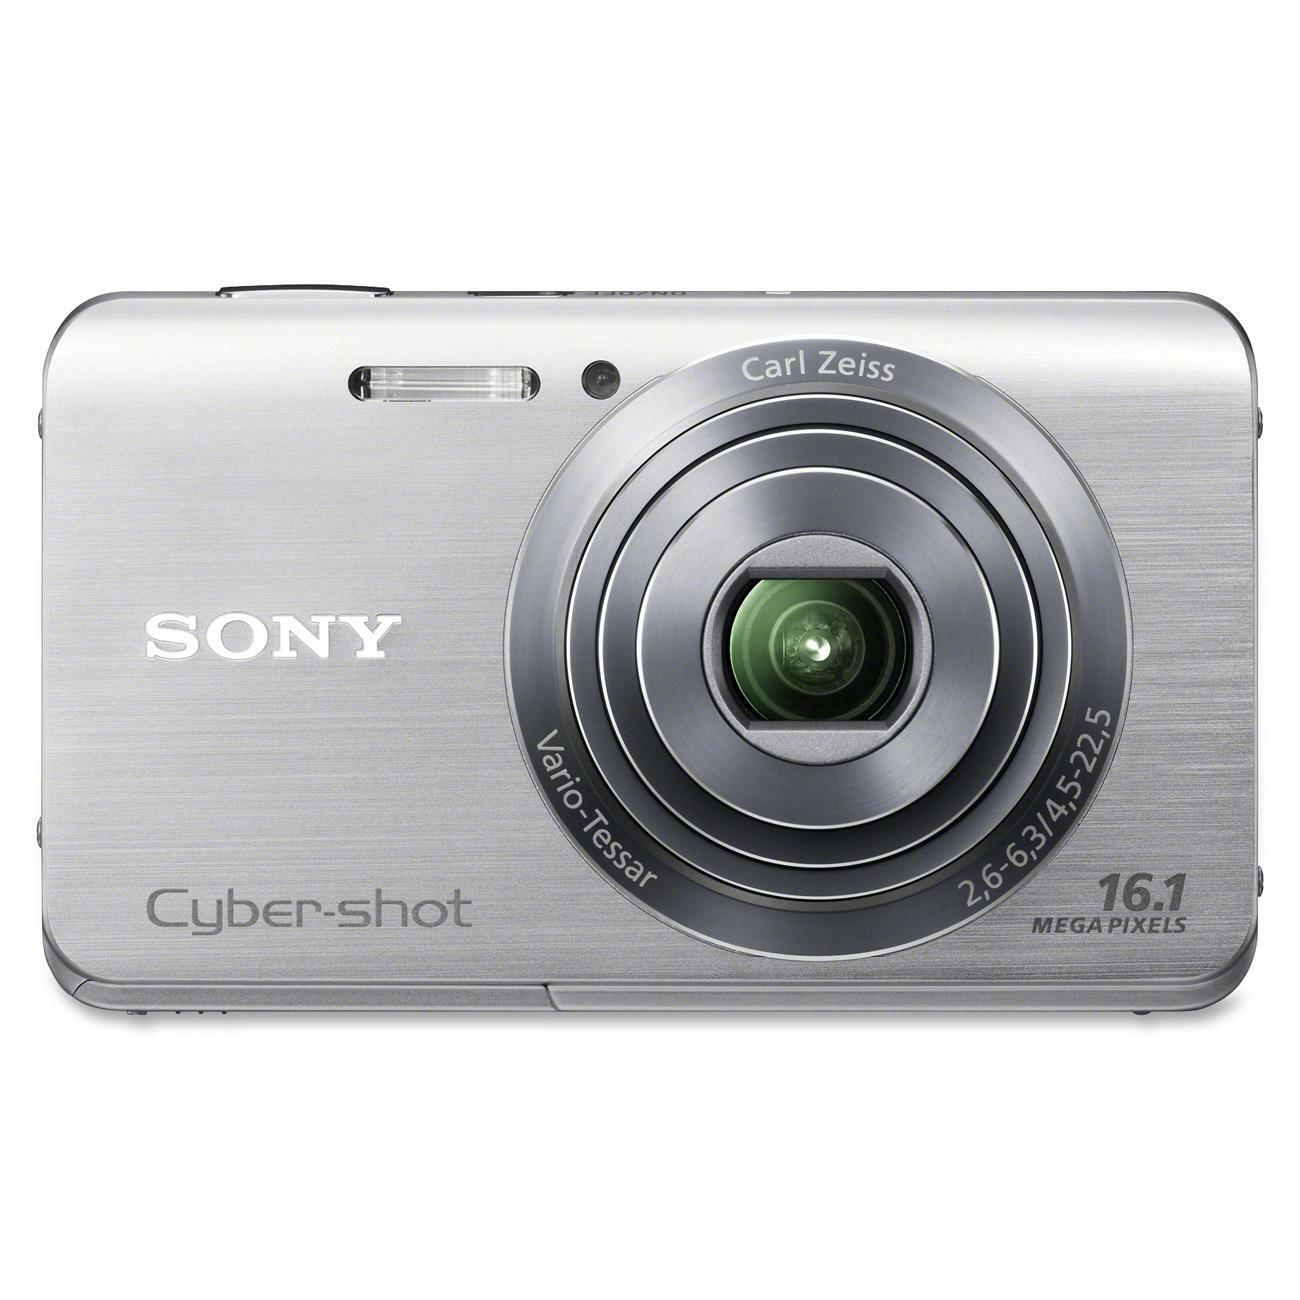 Sony Cyber-shot DSC-W650 16.1MP Silver Digital Camera